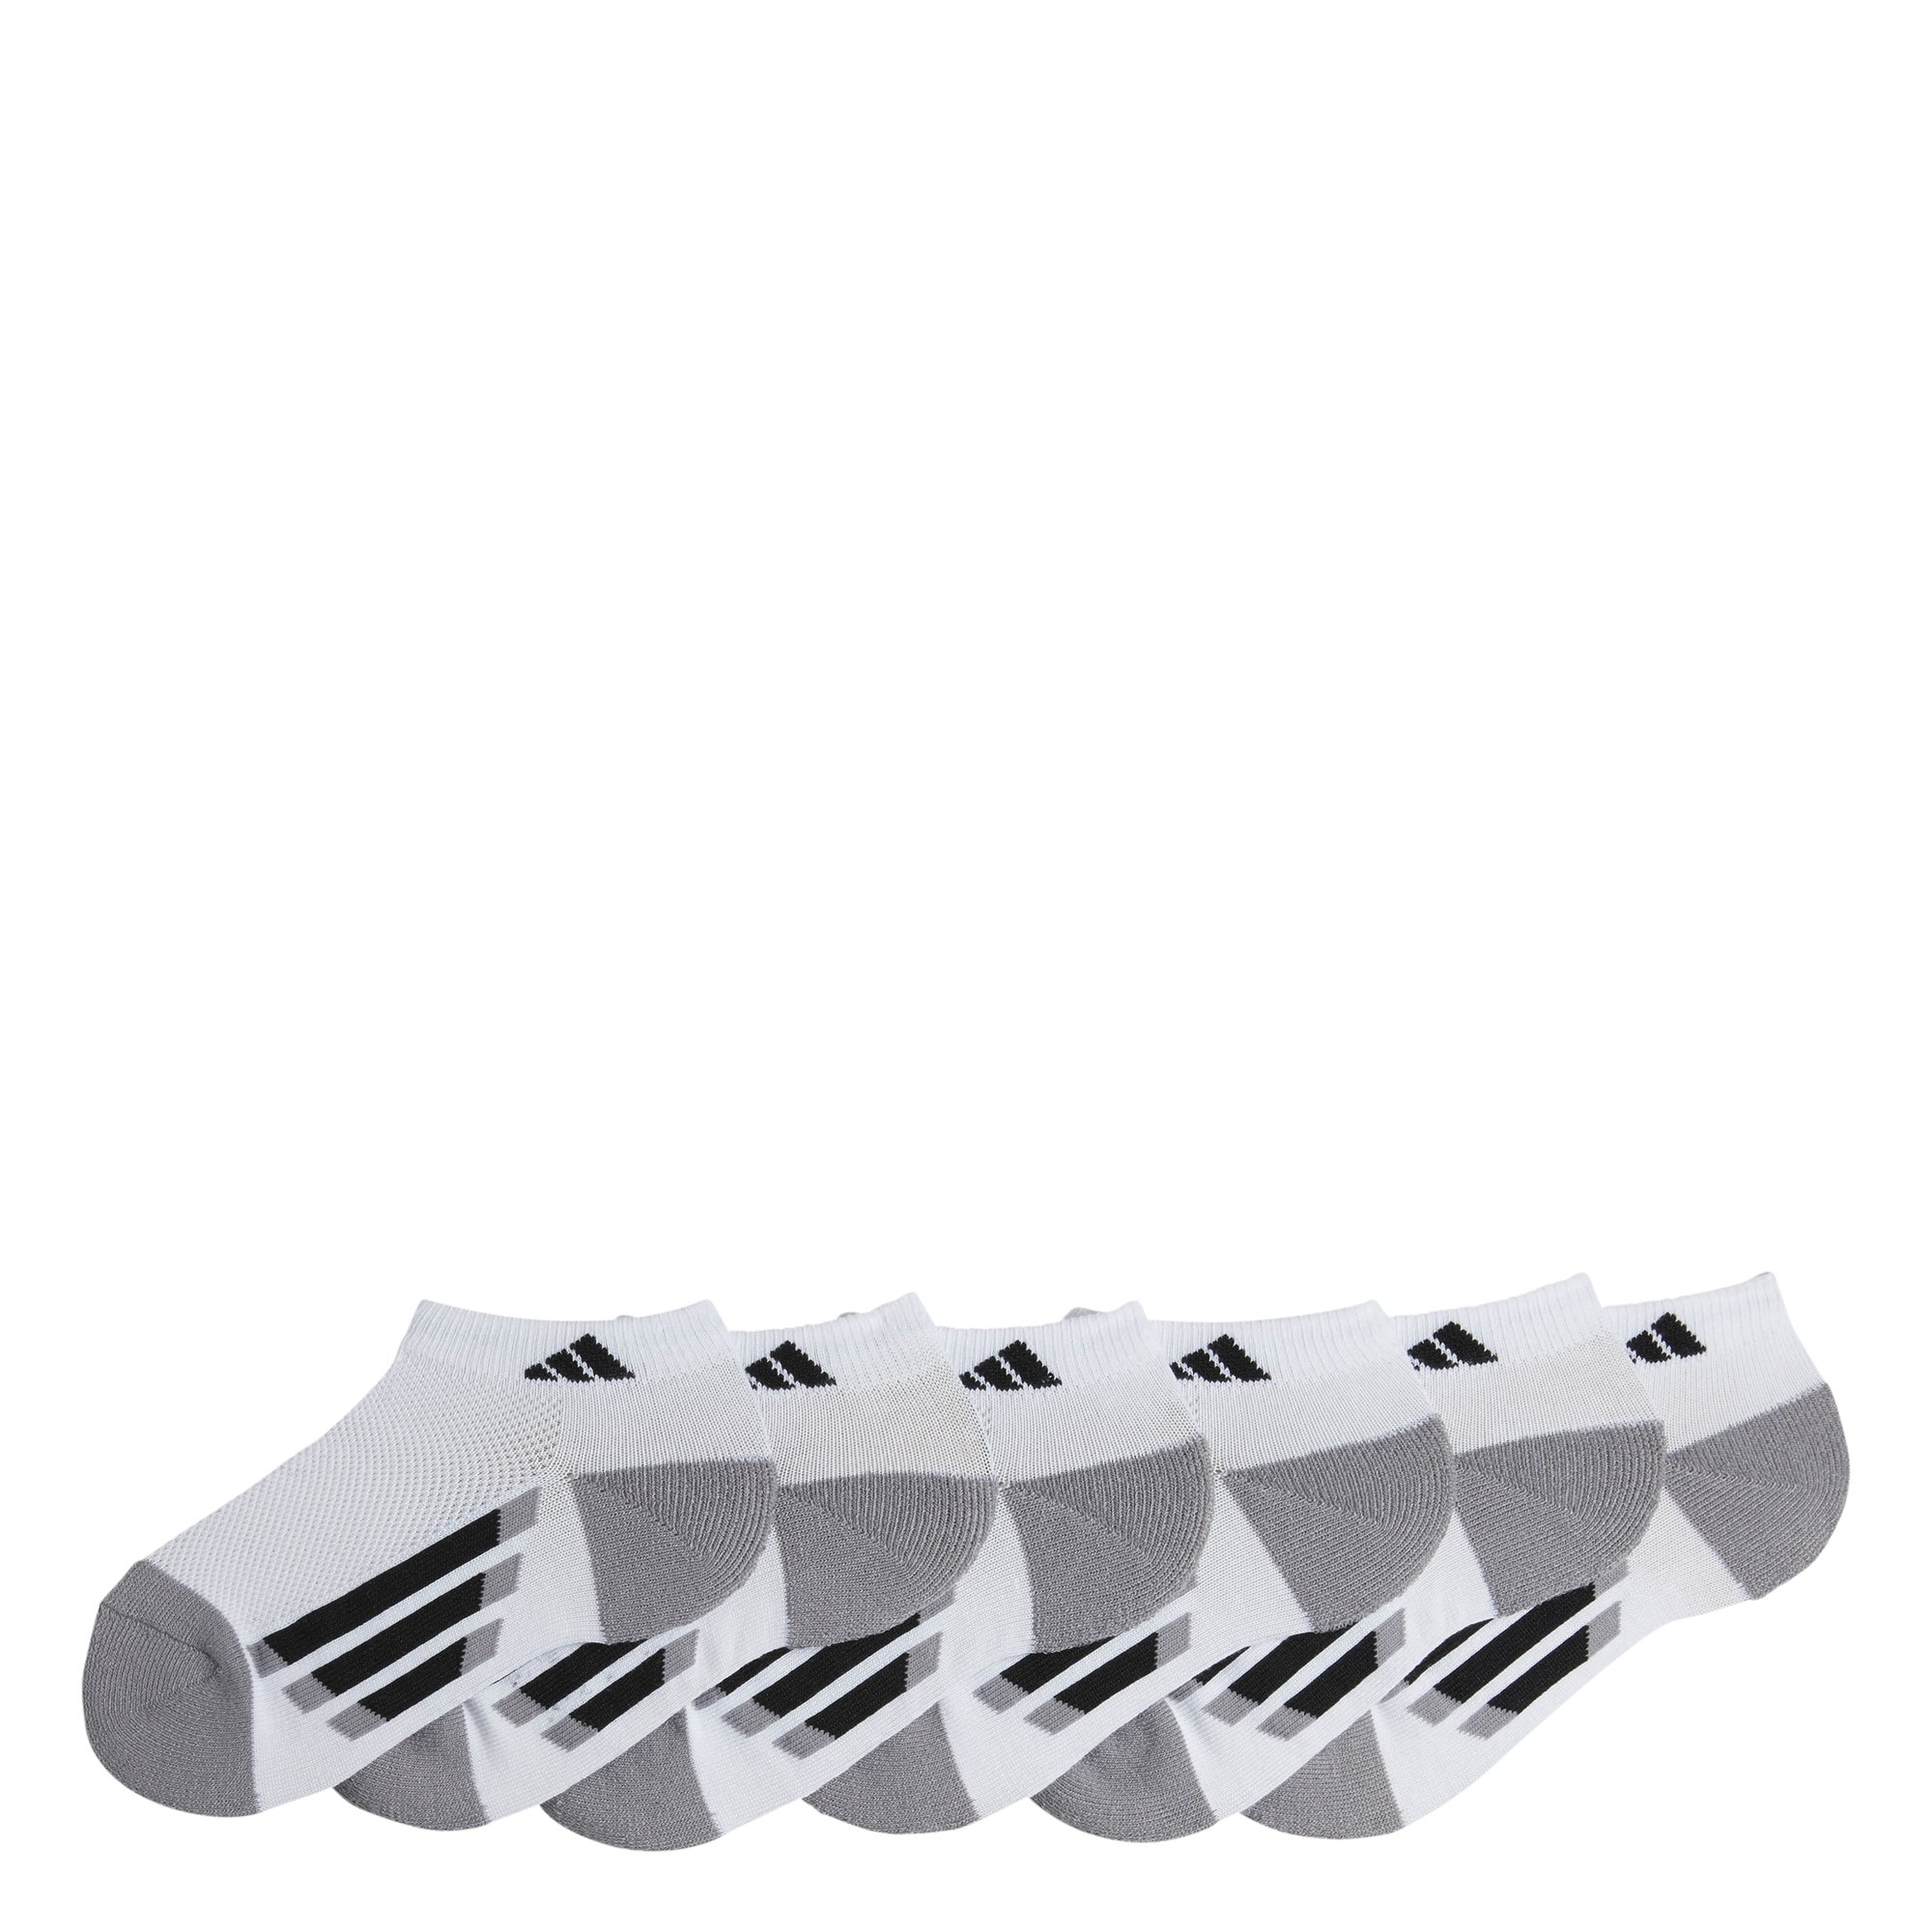 adidas Youth Kids-Boy's/Girl's Cushioned Low Cut Socks (6-Pair), White/Black/Light Onix, Large, (Shoe Size 3Y-9) by adidas